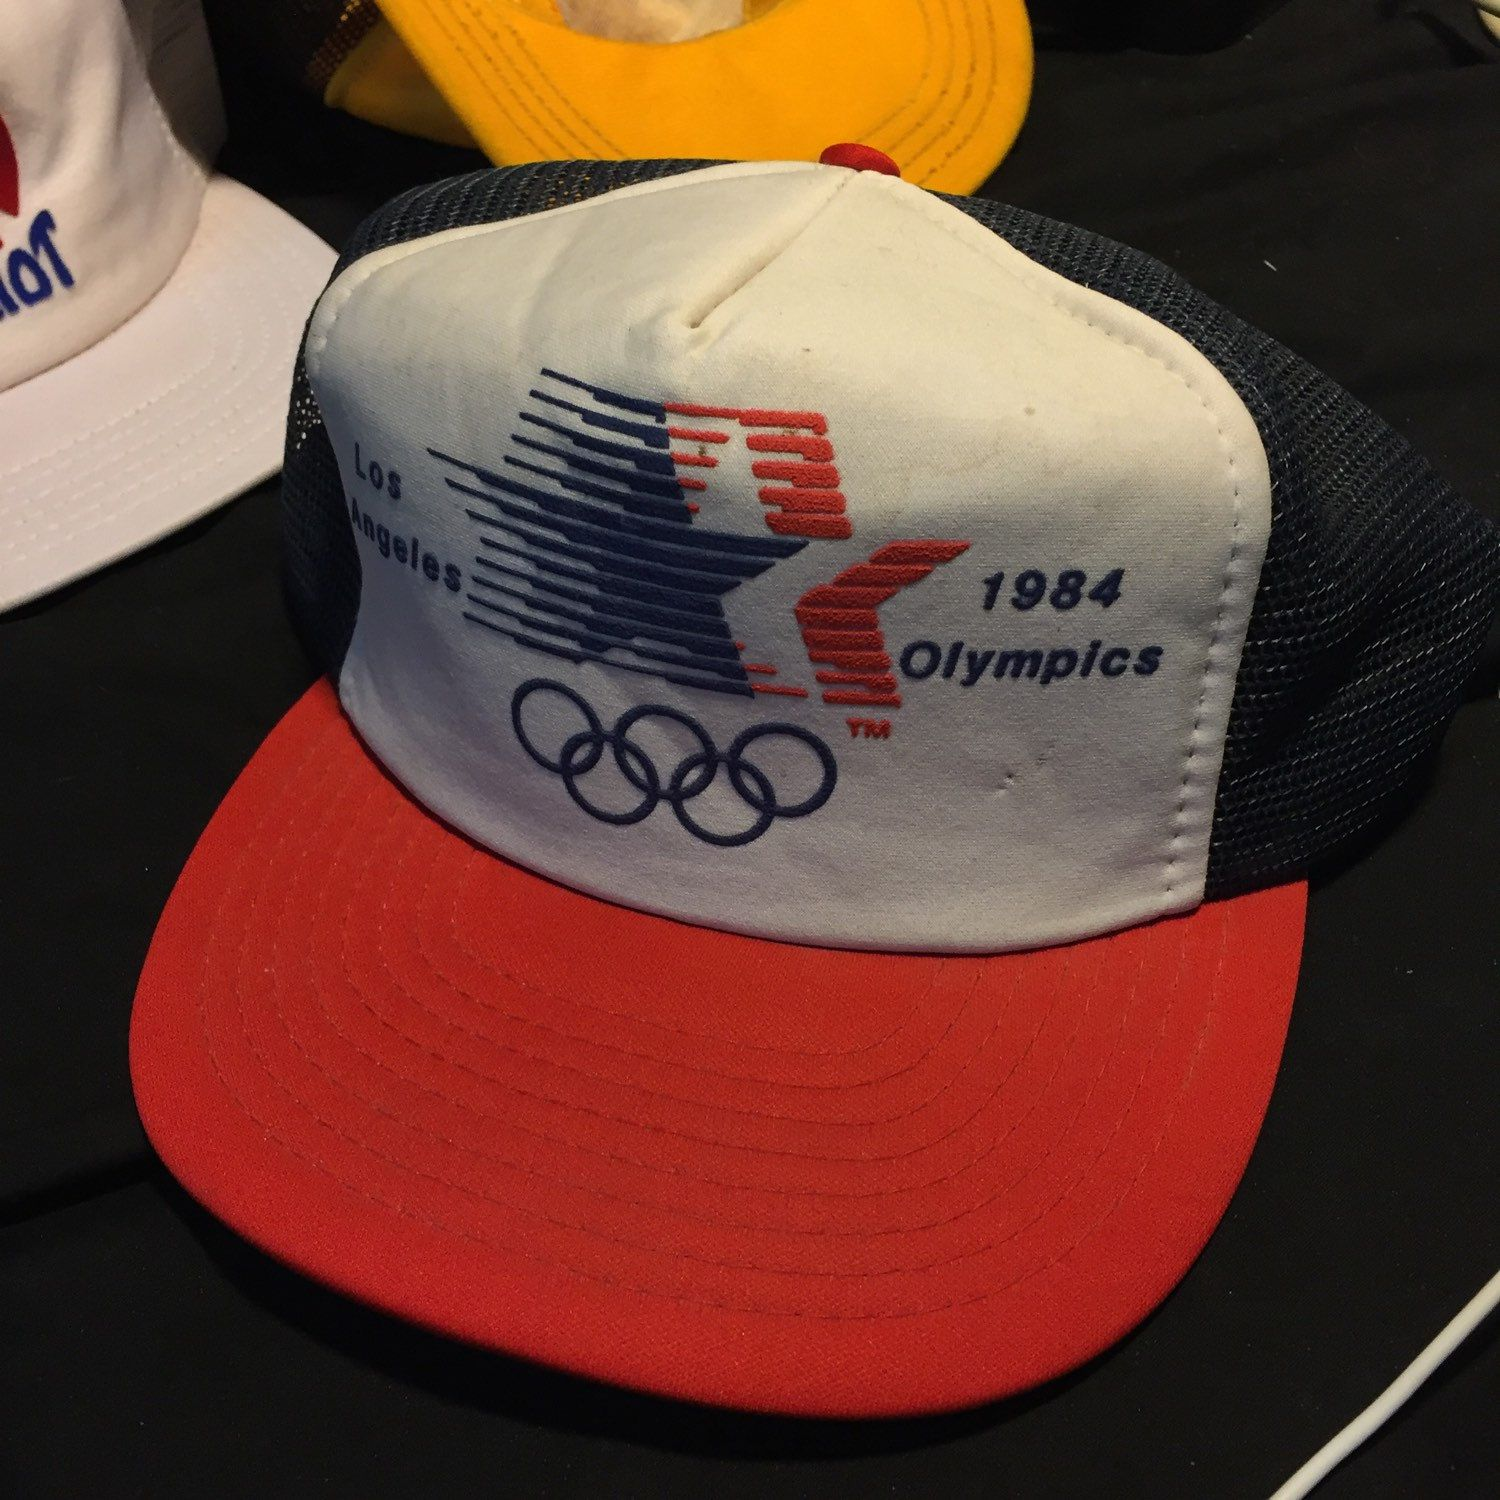 818dd32619e Los Angeles 1984 Olympics trucker cap! Official!!! Get it now ...